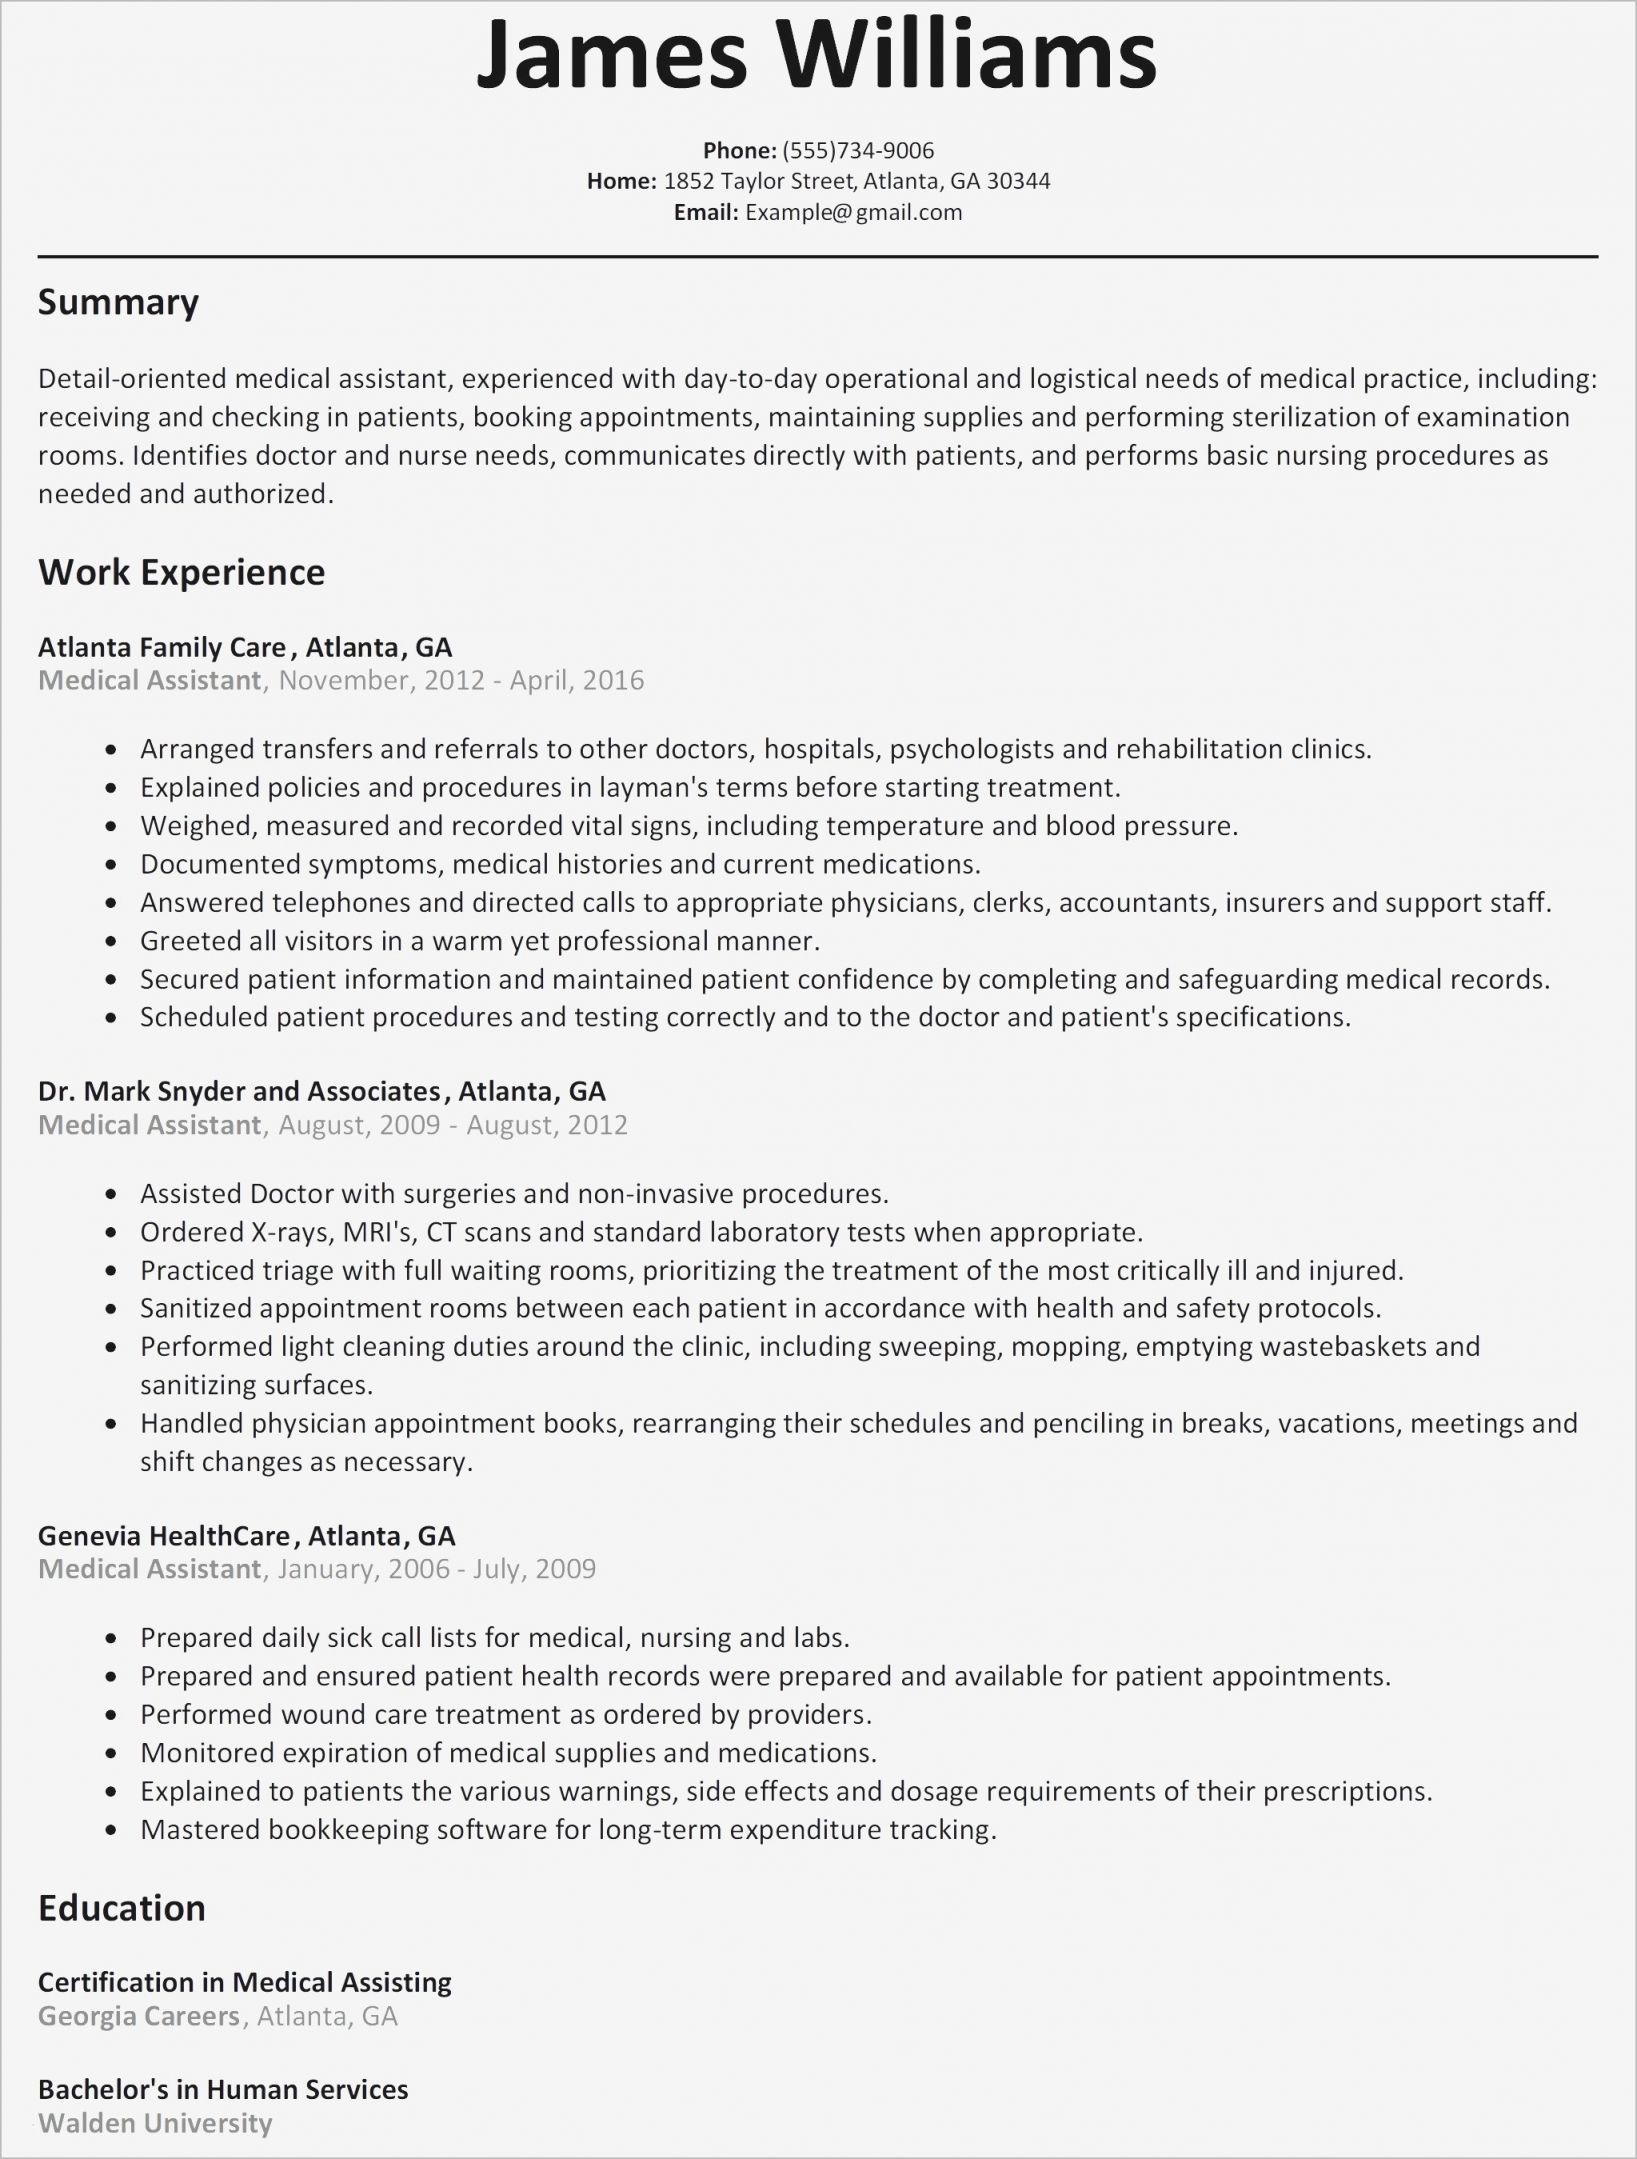 Hints for Good Resumes - 15 Hints for Good Resumes